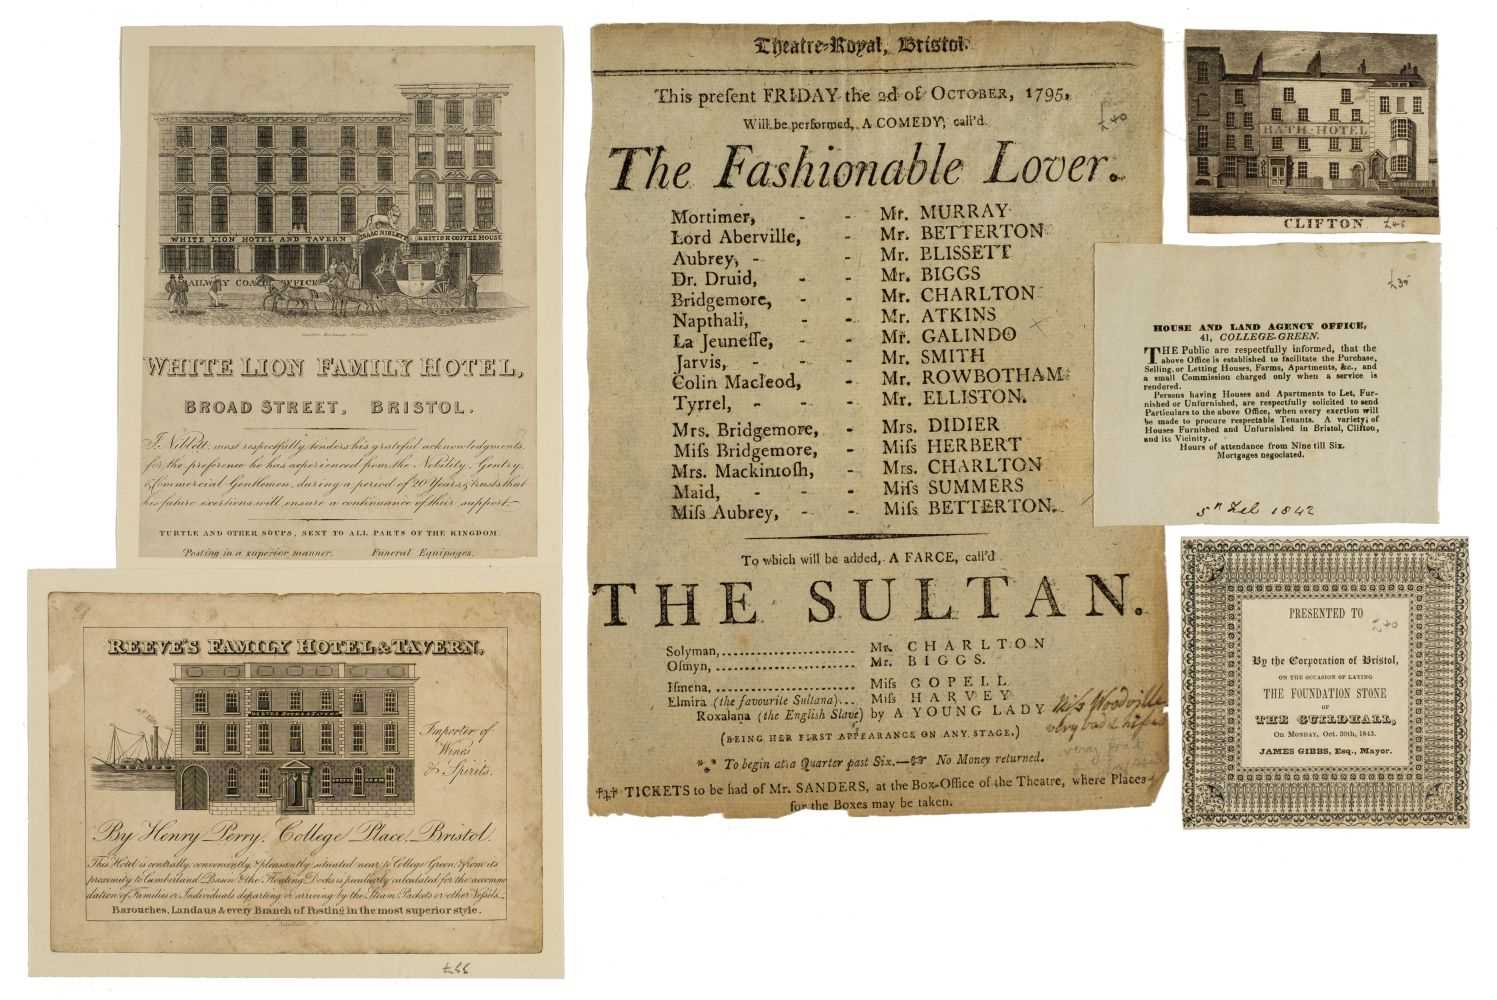 Lot 15 - Bristol. A collection of ephemera relating to places and functions, 18th-19th century